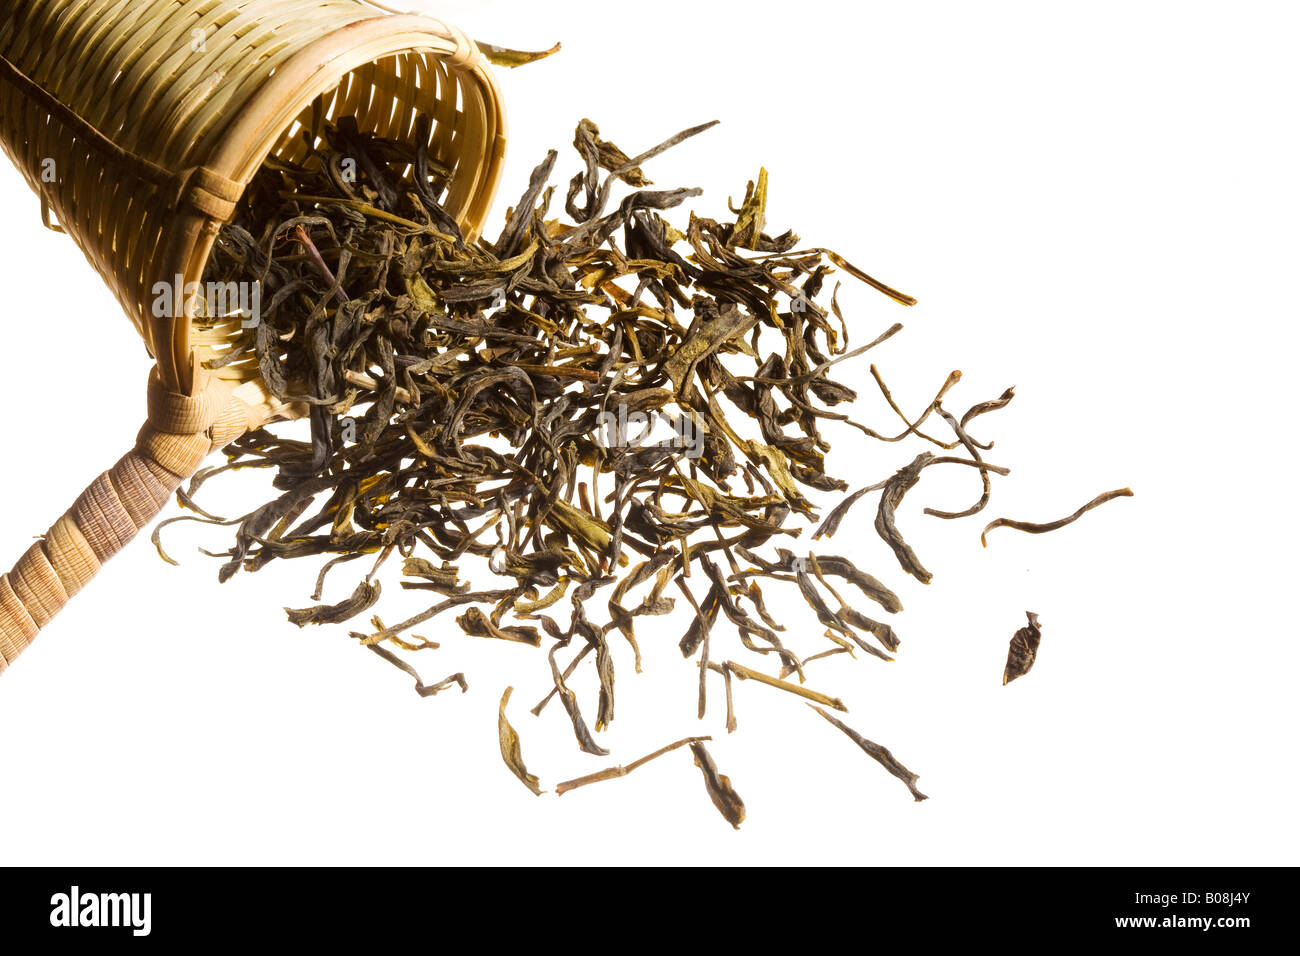 An overflowing heap of raw tea spilling out of a woven scooper. - Stock Image